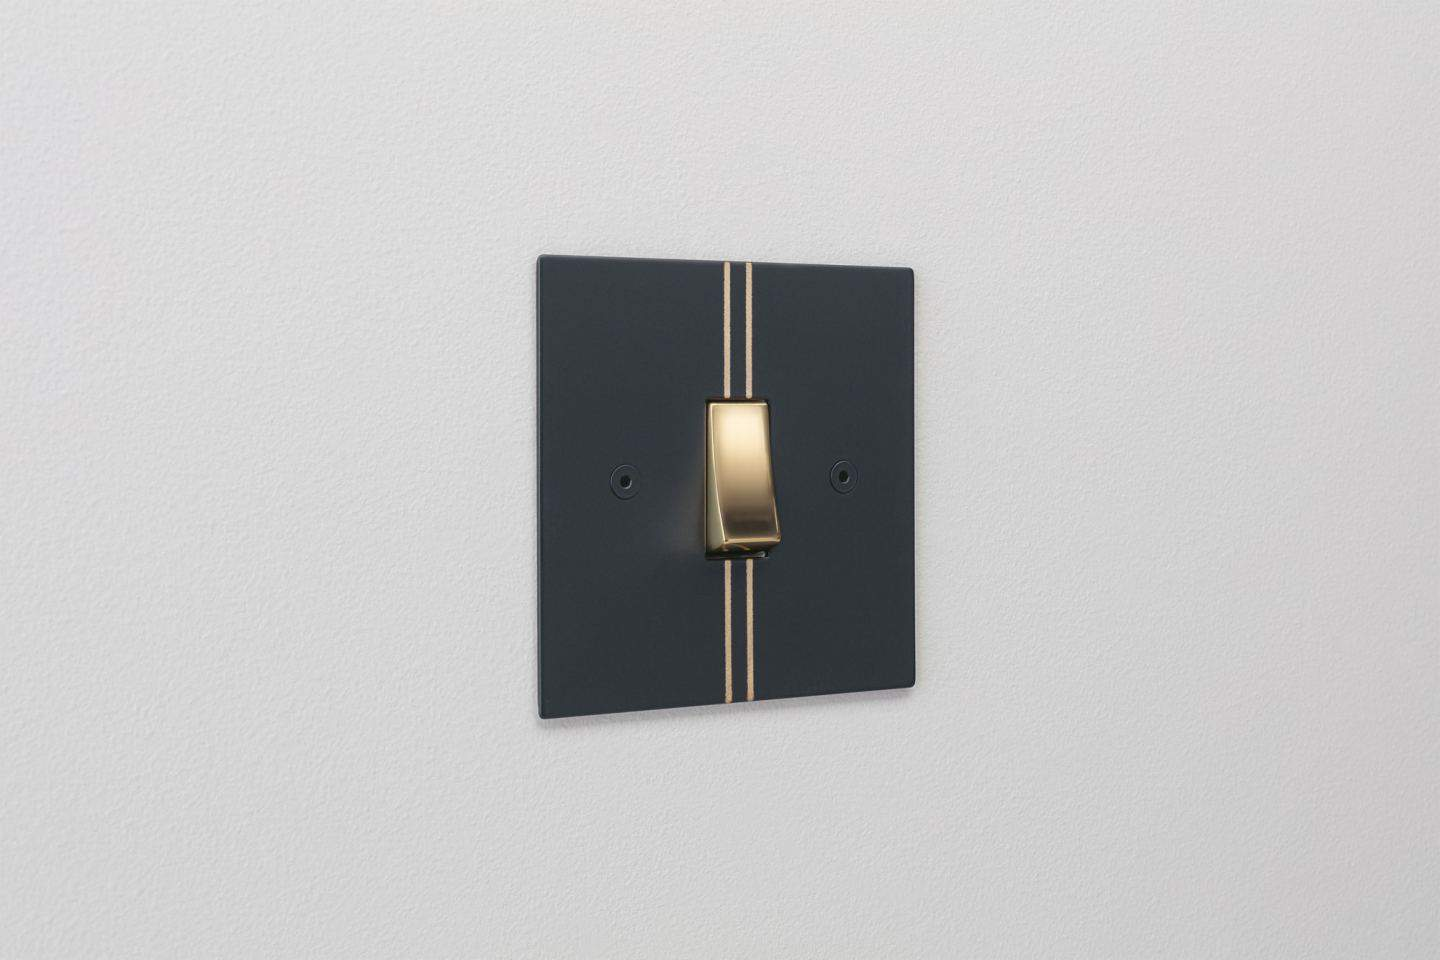 Designer light switches by Kelly Hoppen for Focus SB. Pinstripe is a matt black switch plate featuring two metallic gold pinstripes and a gold switch.